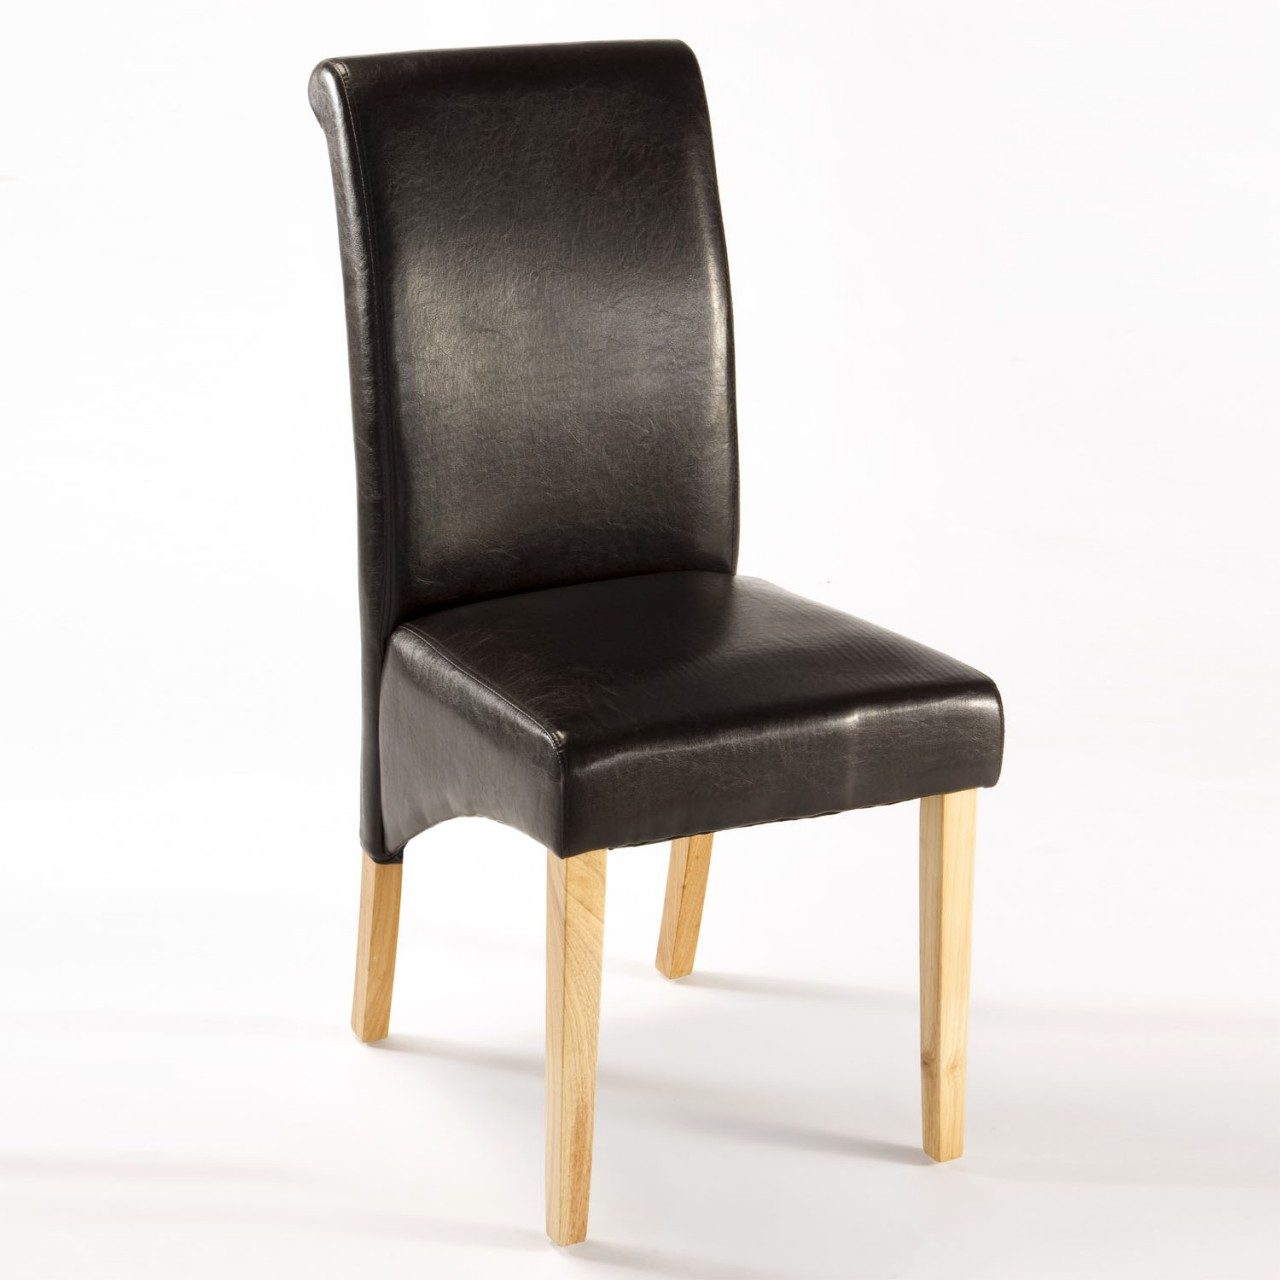 Ebony leather dining chairs